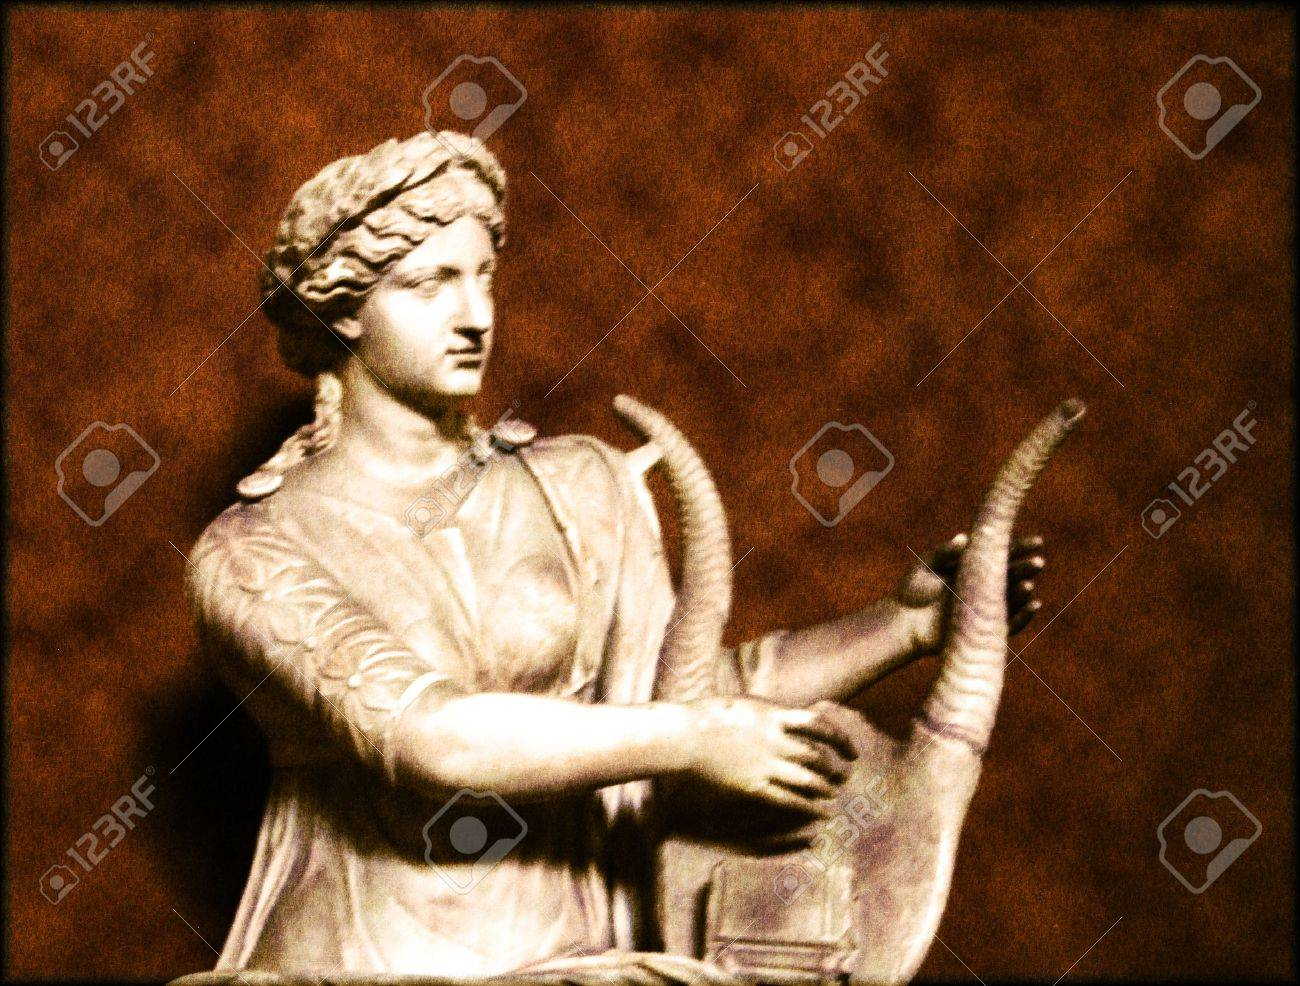 Ancient statue of woman playing the harp Stock Photo - 6426043